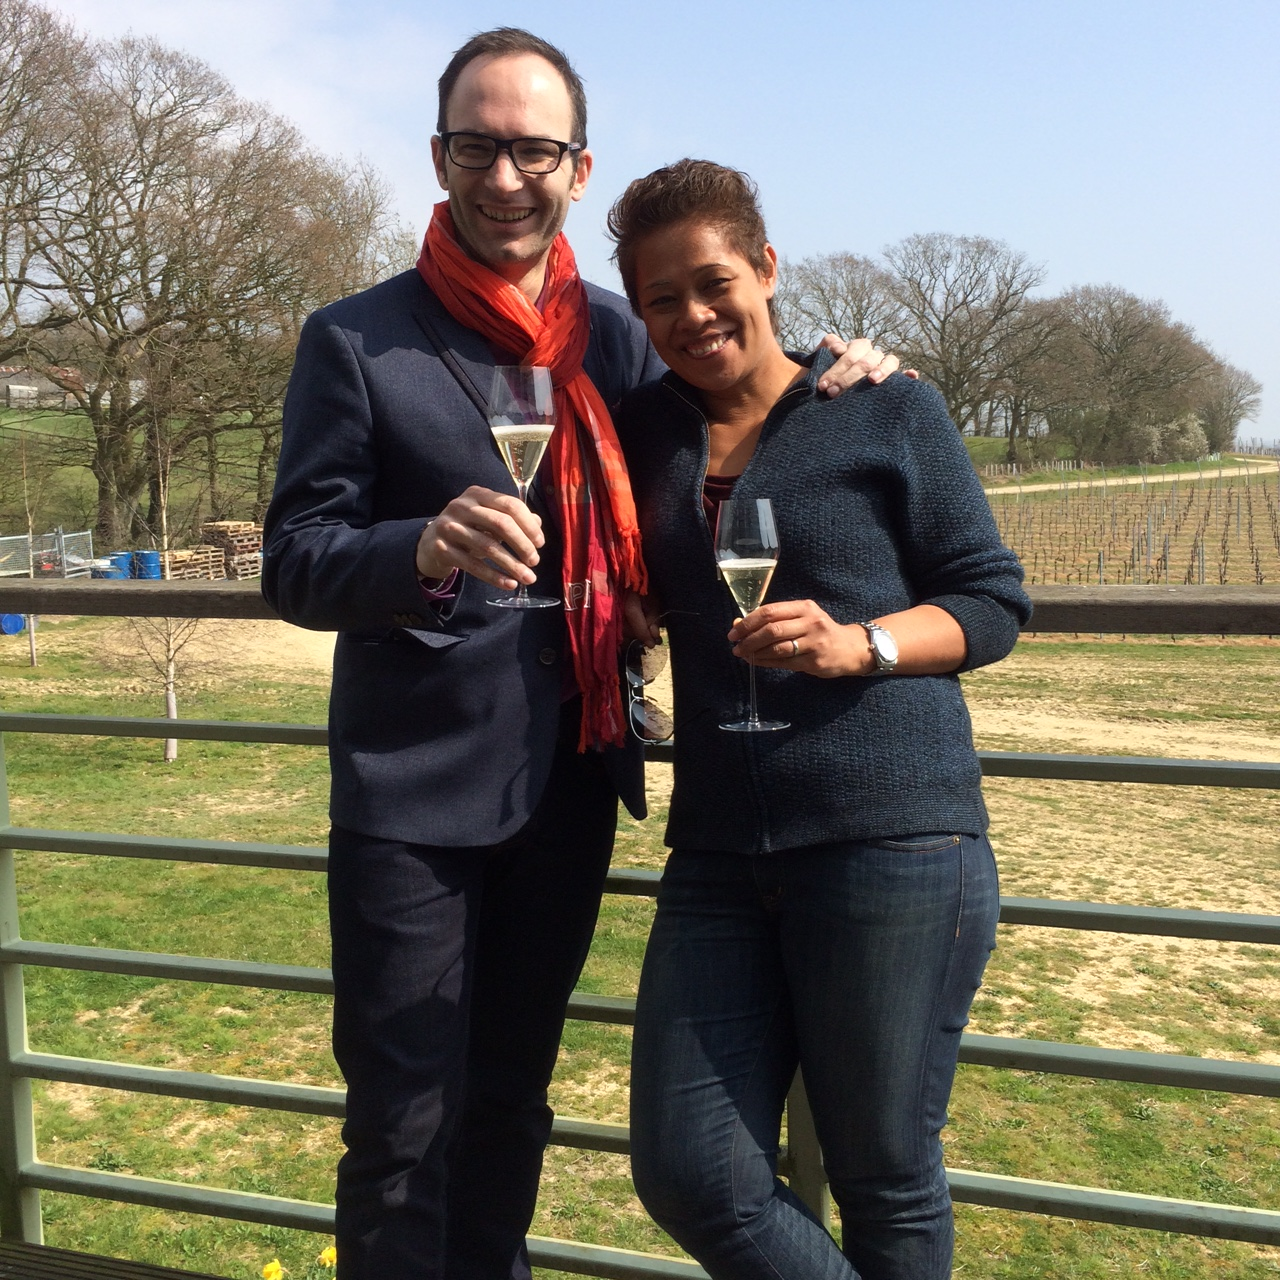 Visit to Gusbourne Estate with Monica and David Galetti